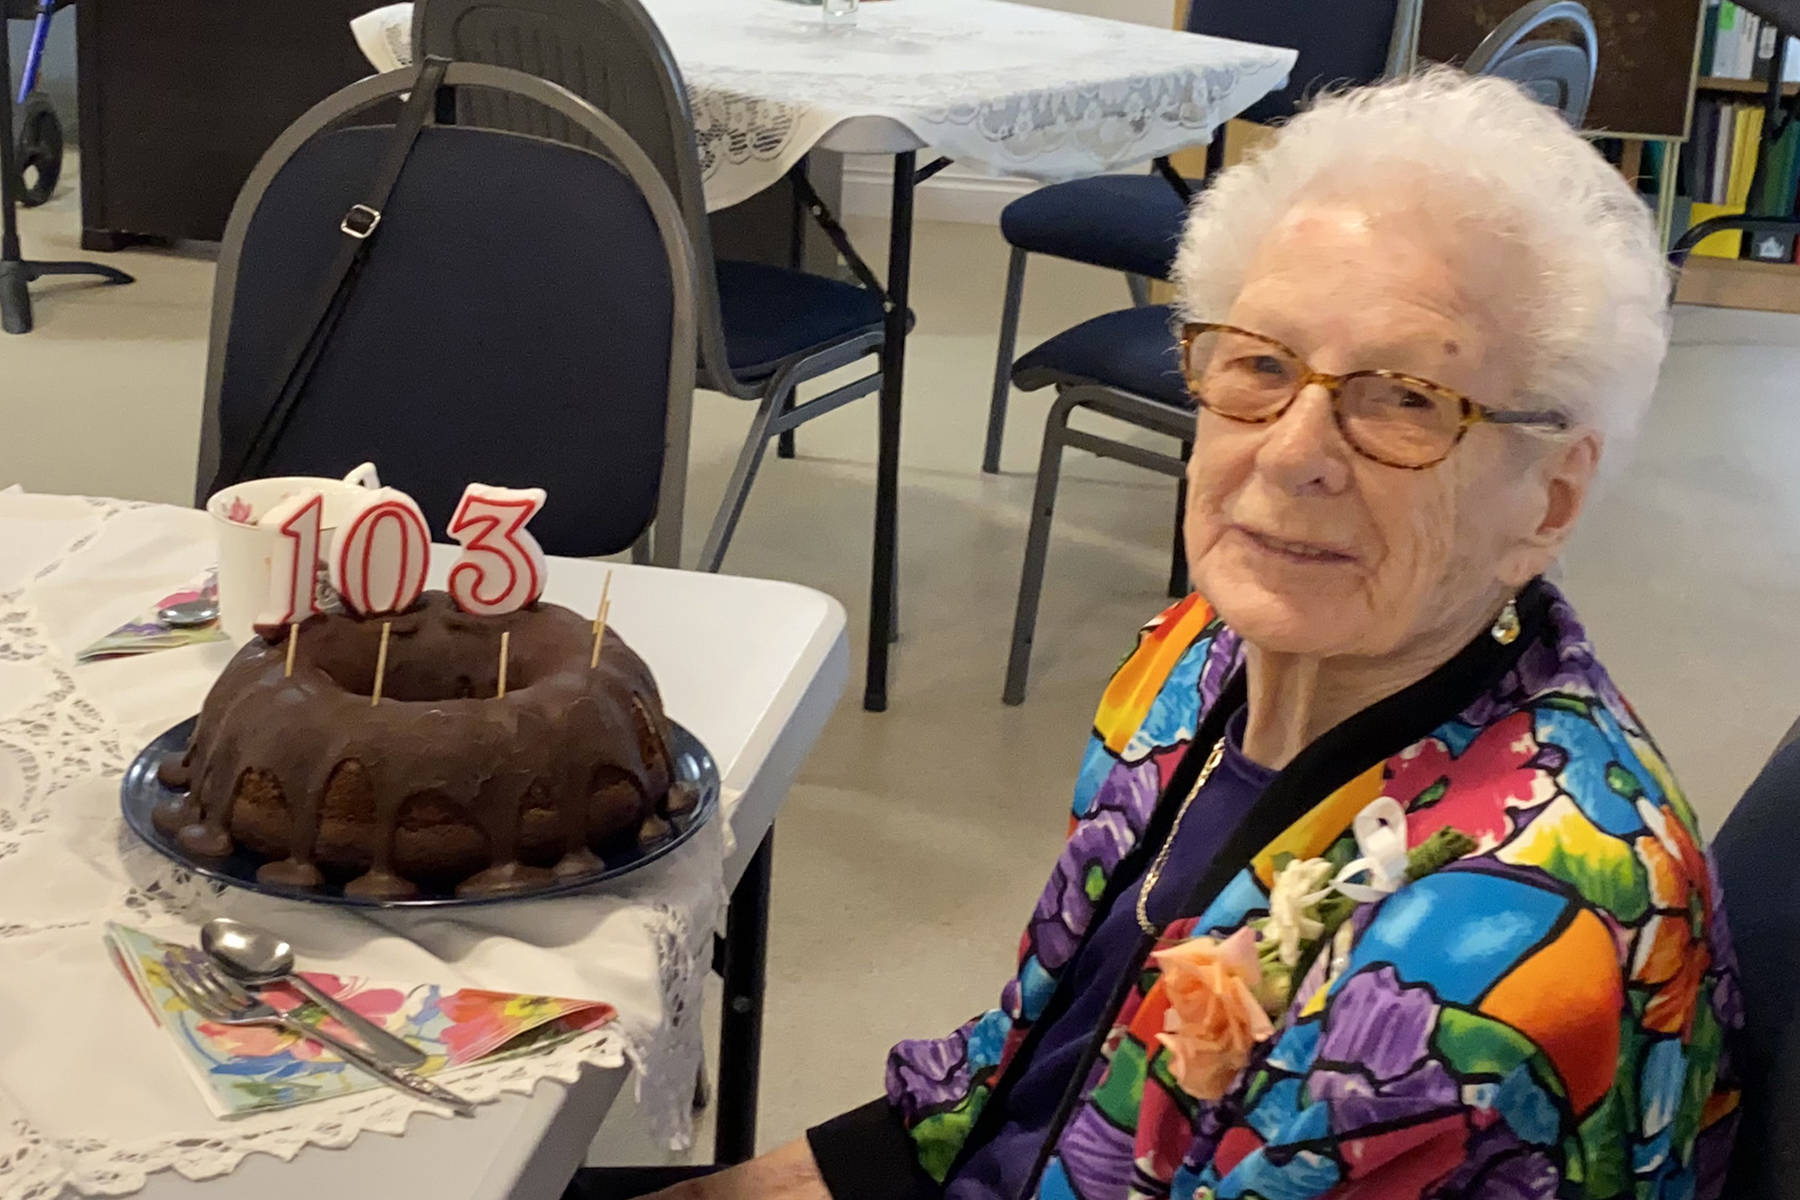 Mary Barrows, a resident of Angus Place in Summerland, celebrated her 103rd birthday on Aug. 19. (John Arendt - Summerland Review)